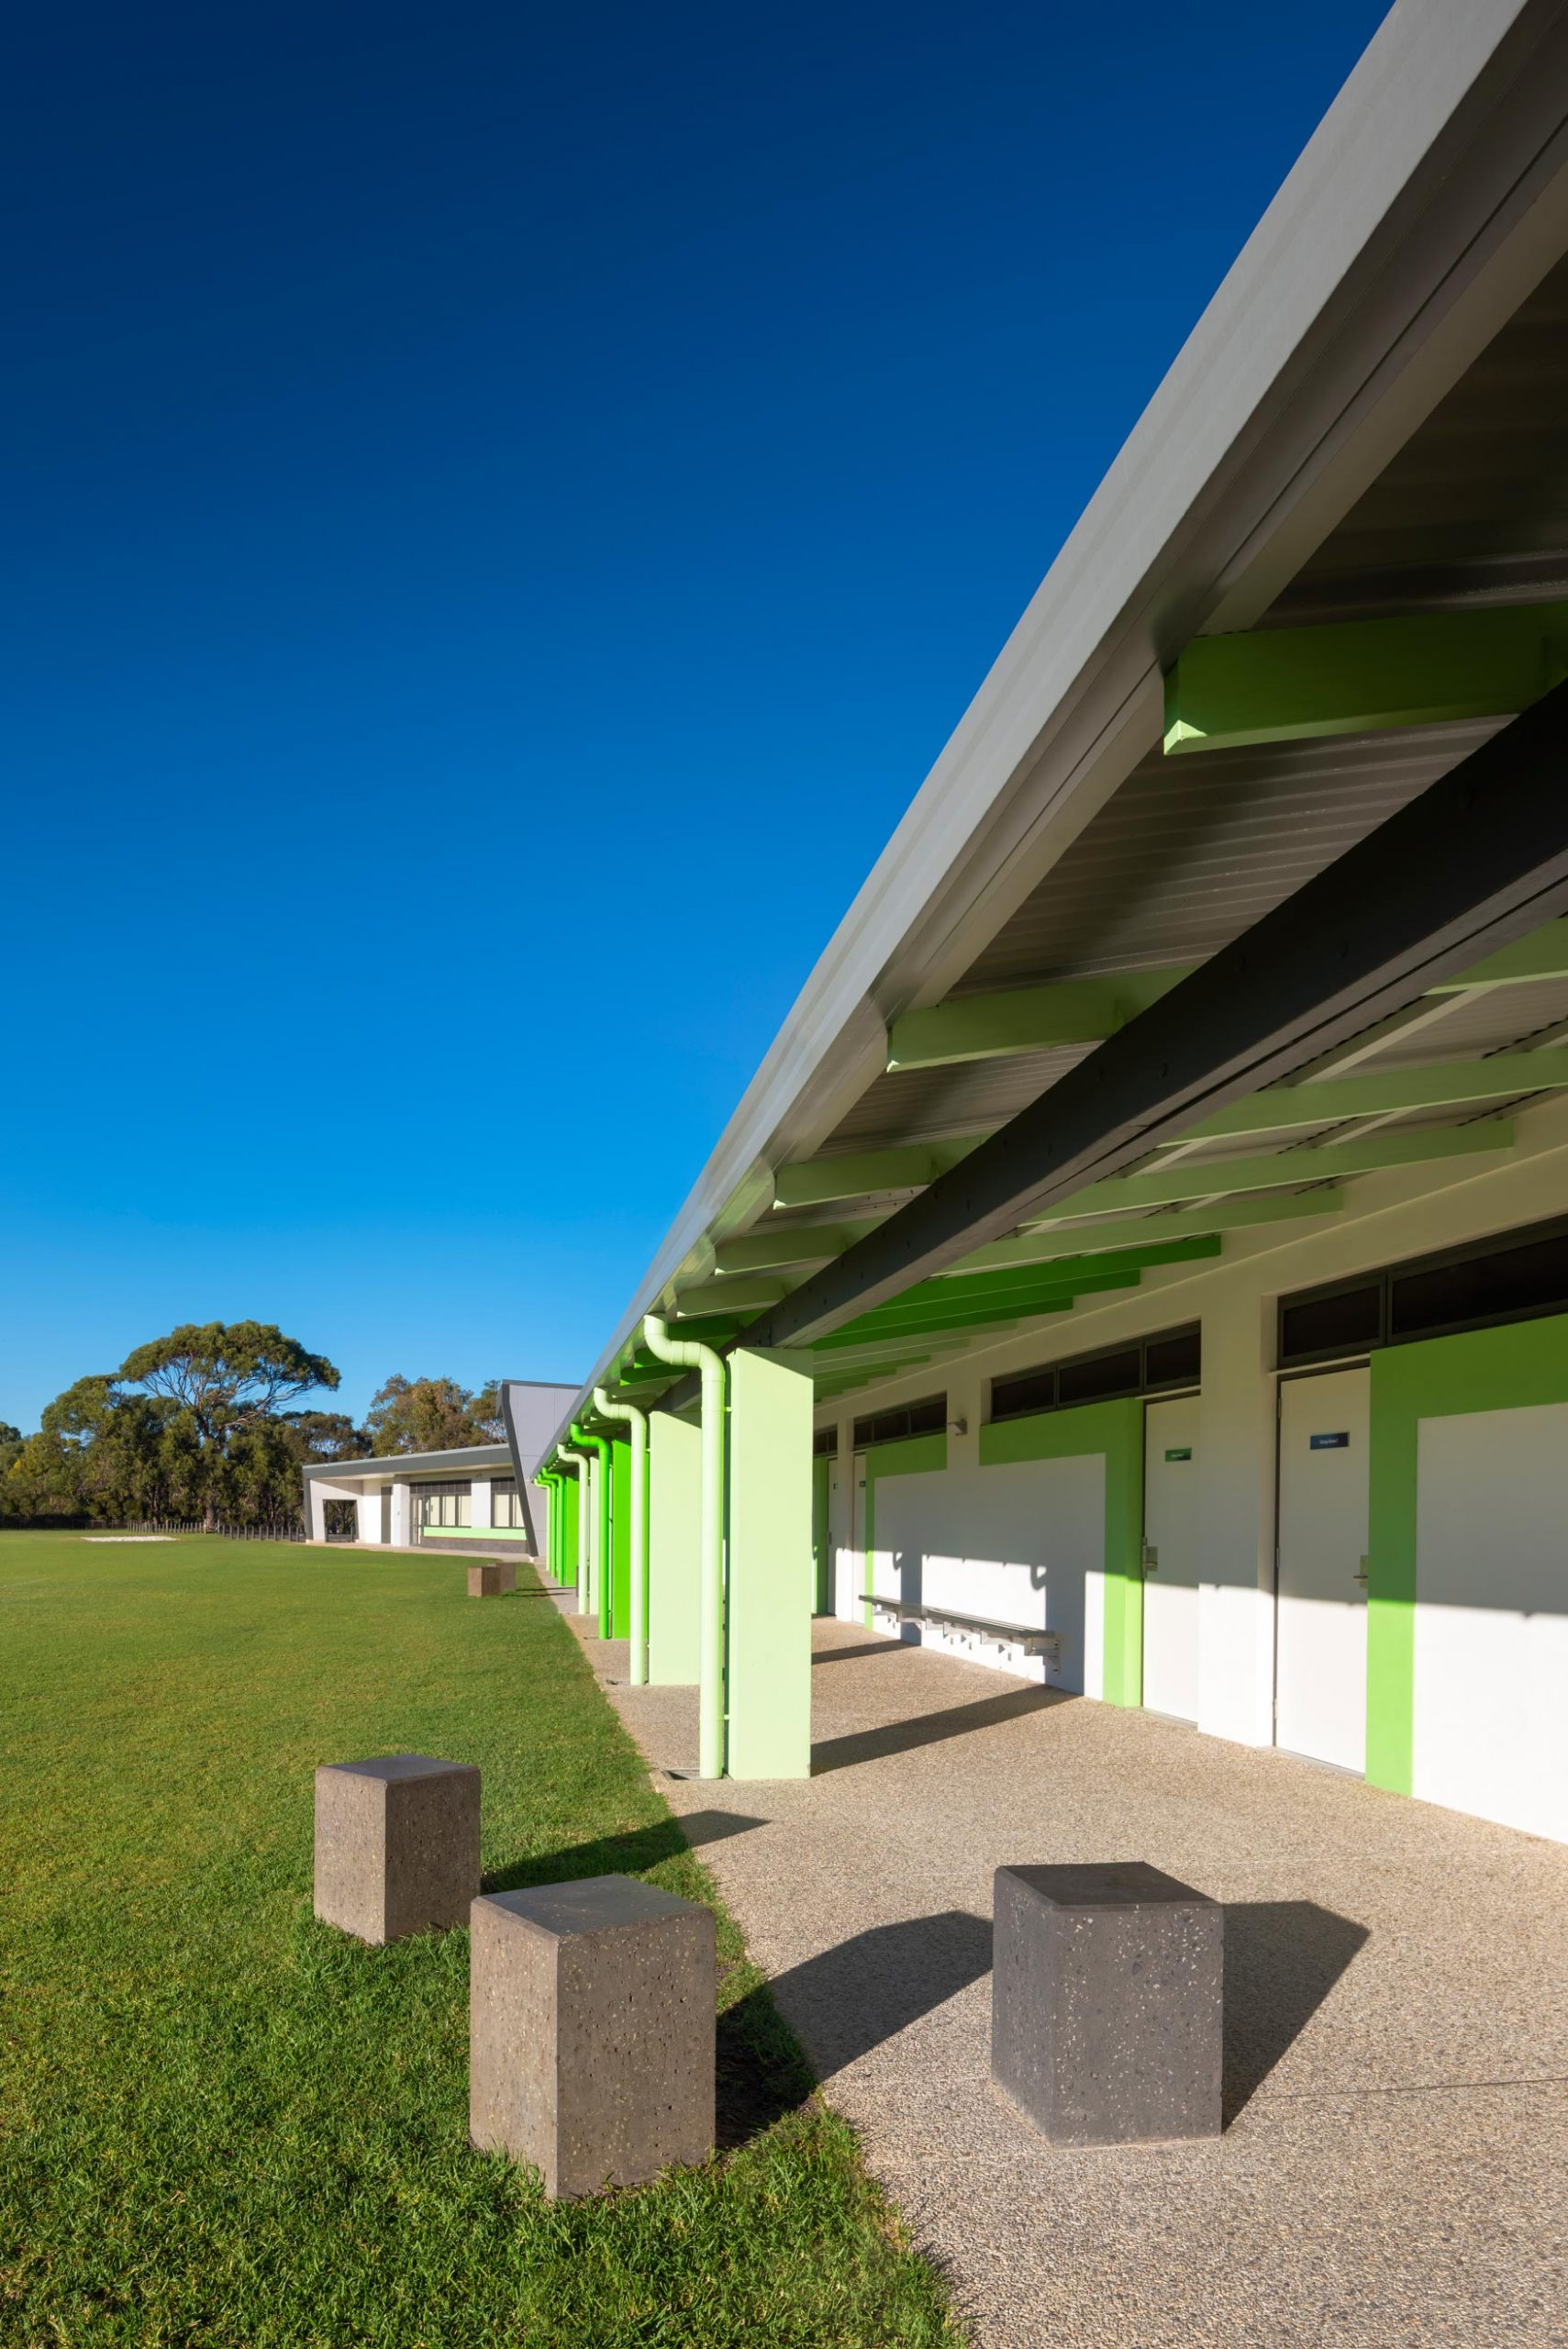 Carine Hall Recreation Centre outdoor covered walkway with green columns and beams